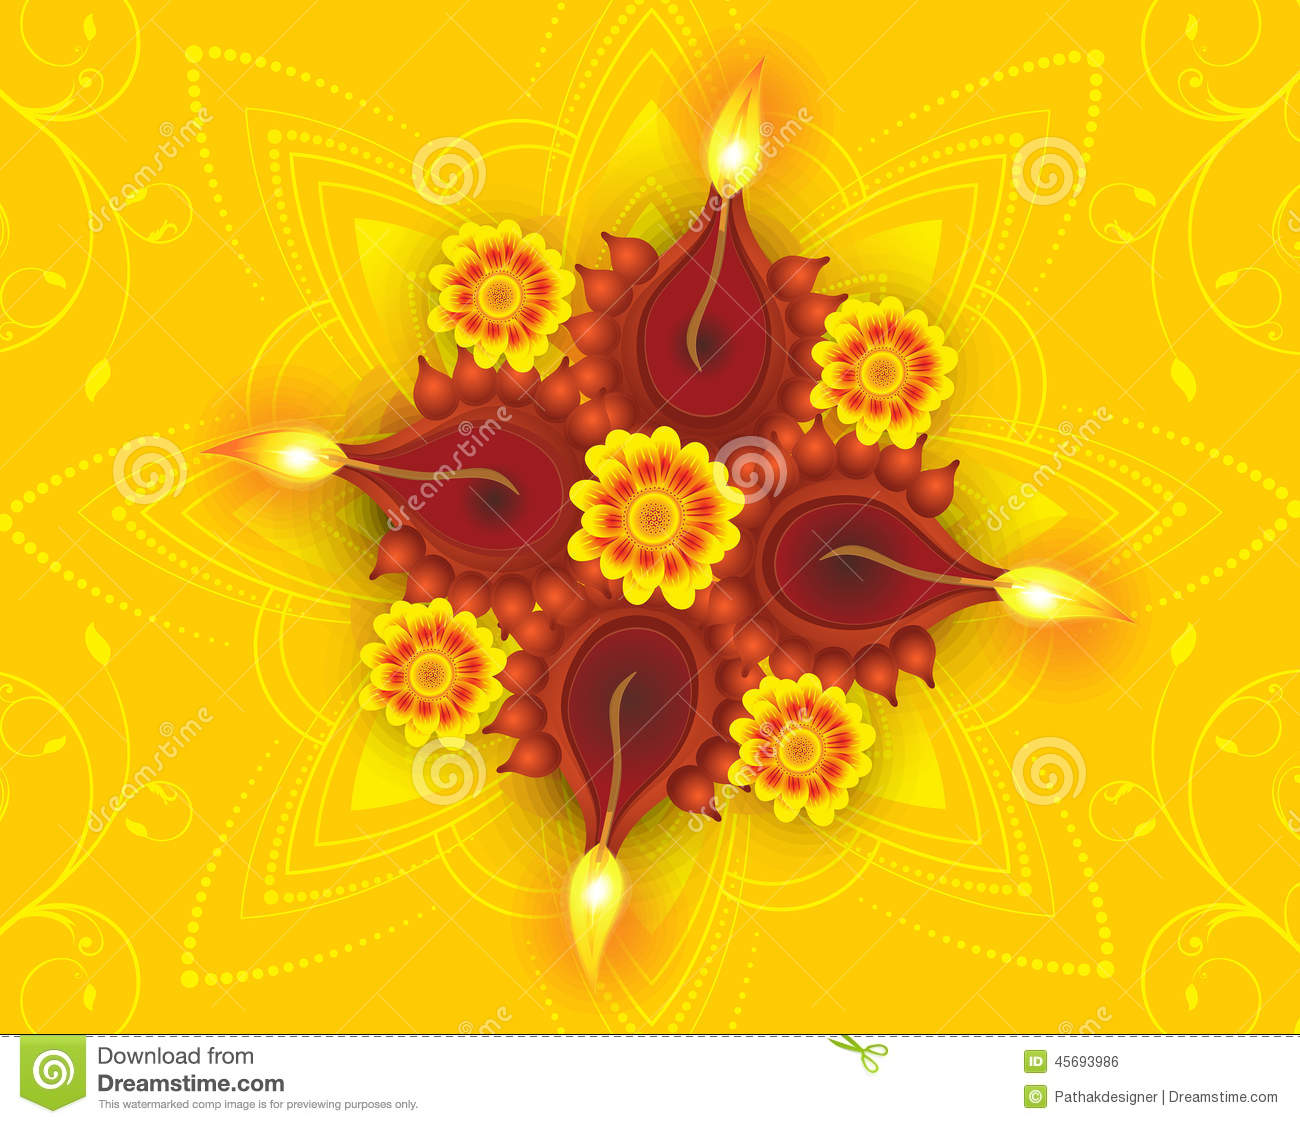 rangoli abstract background wallpapers - photo #17